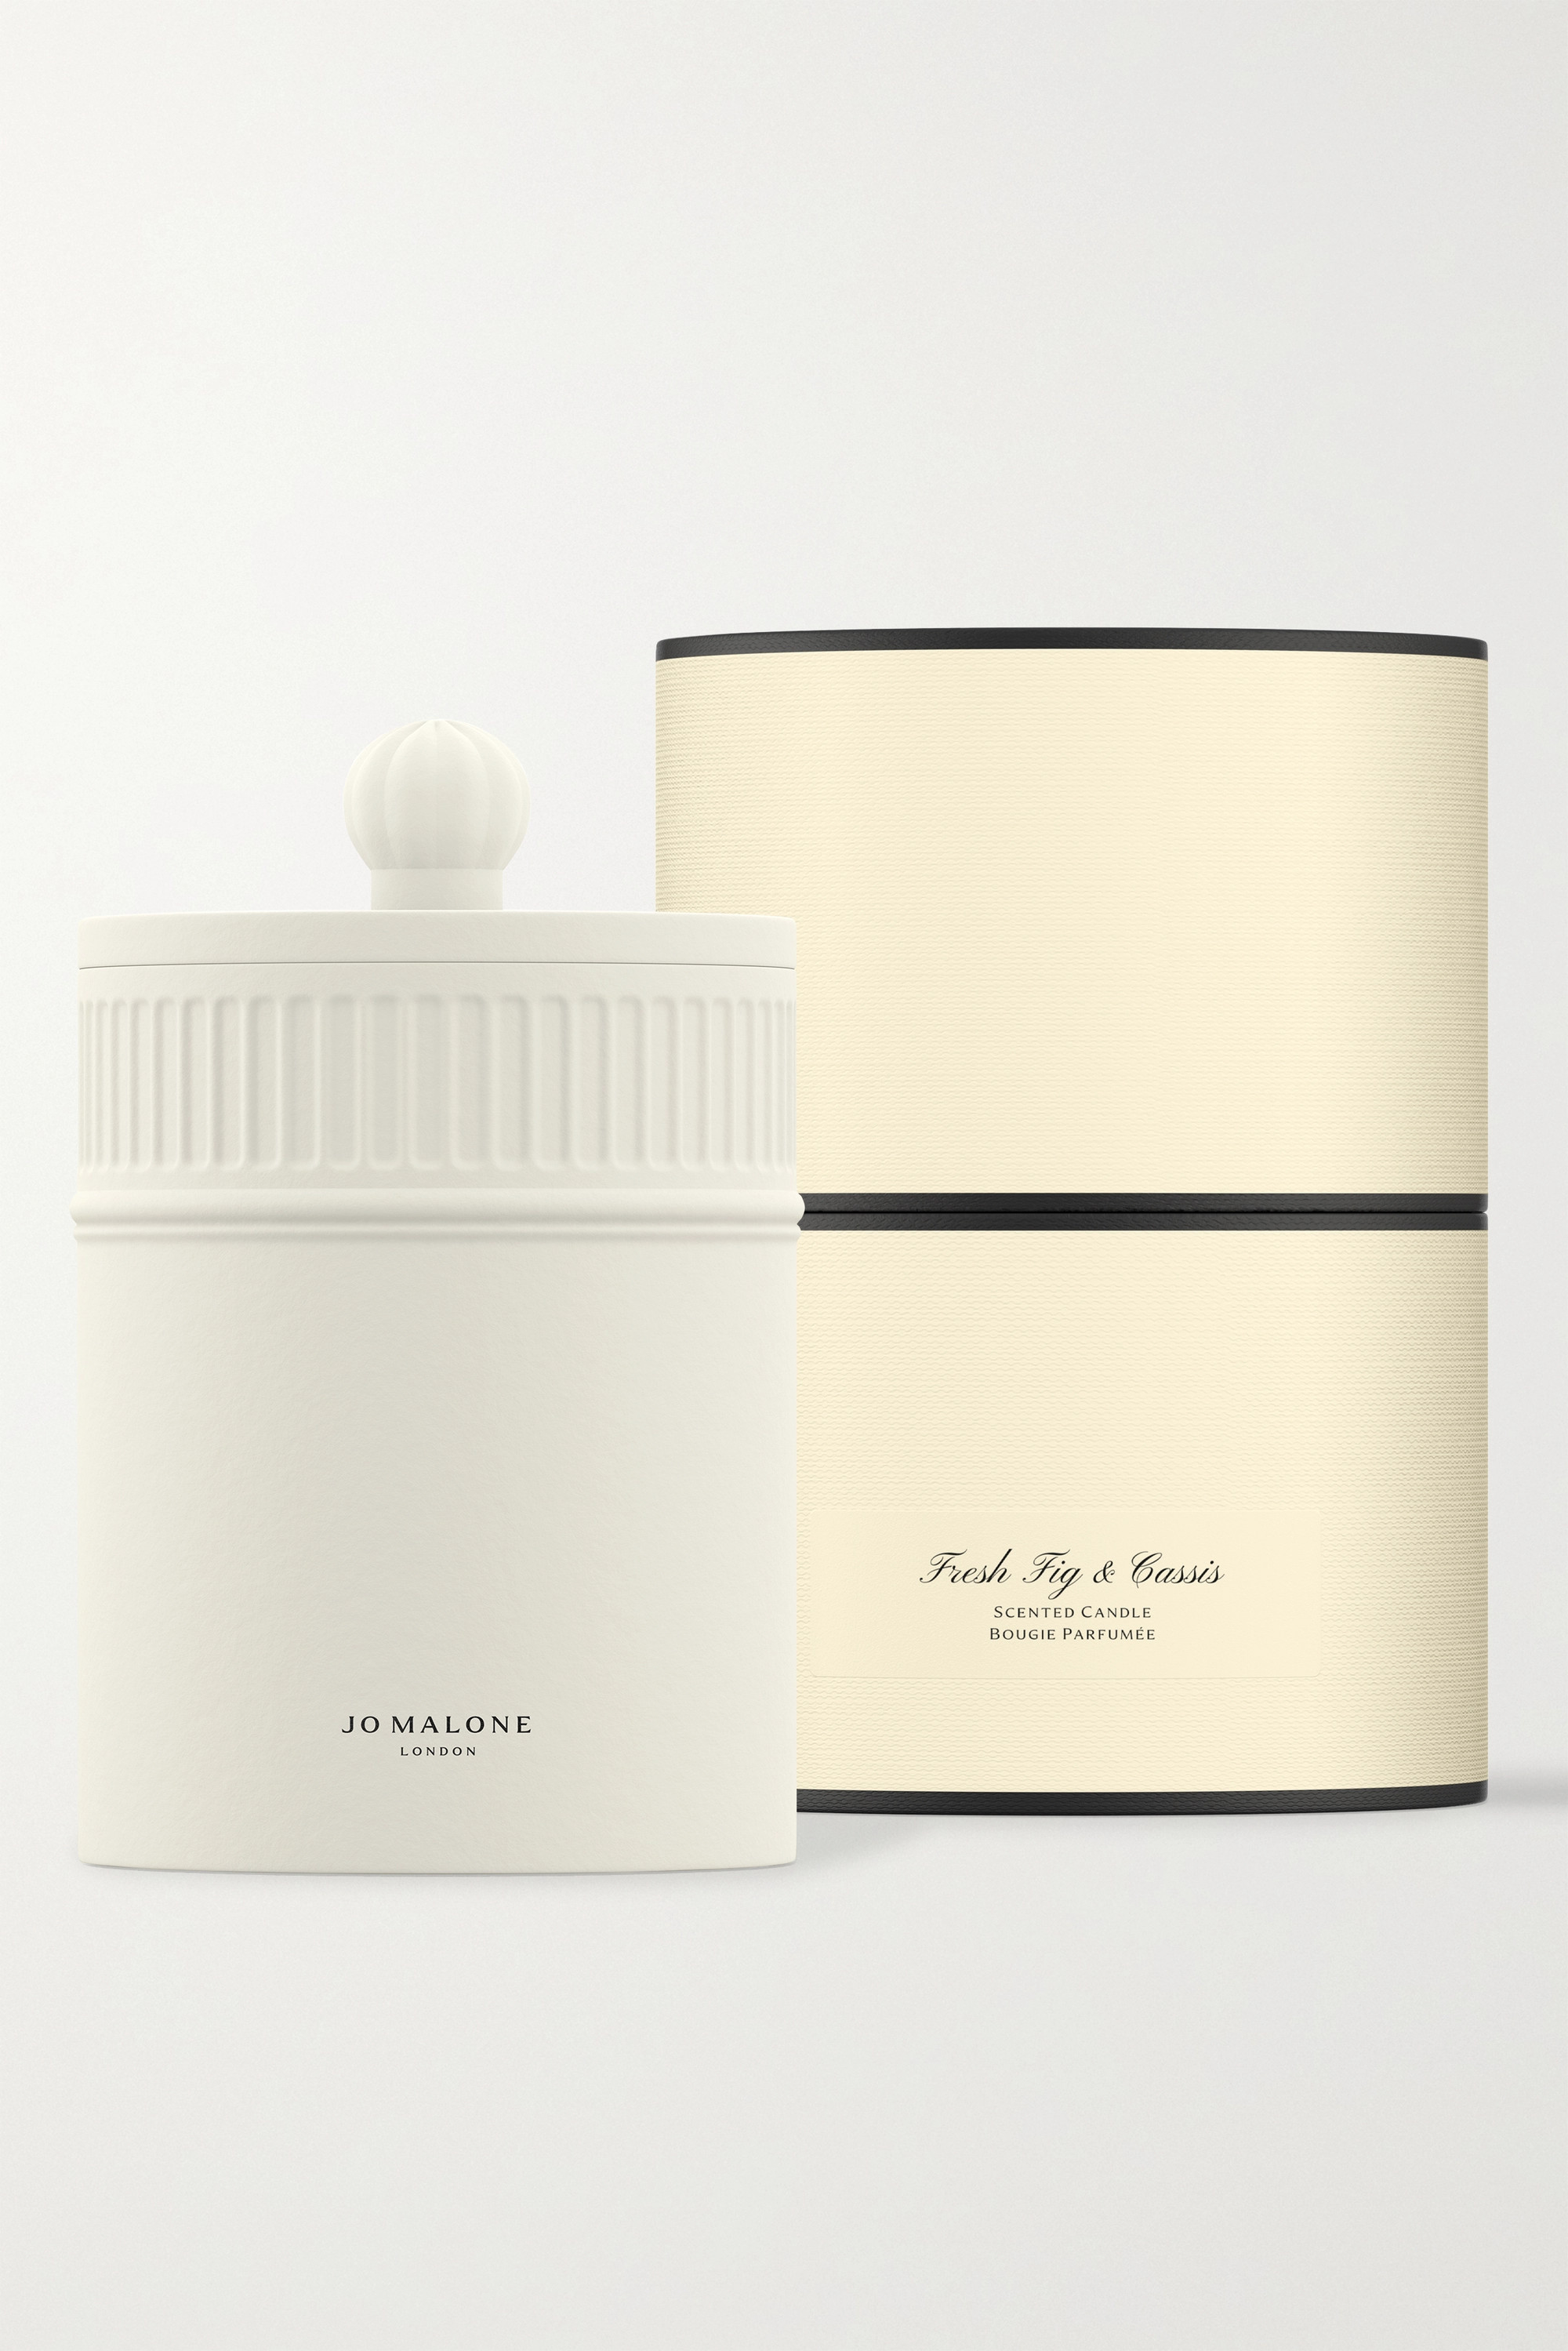 Jo Malone London Fresh Fig & Cassis Scented Candle, 300g